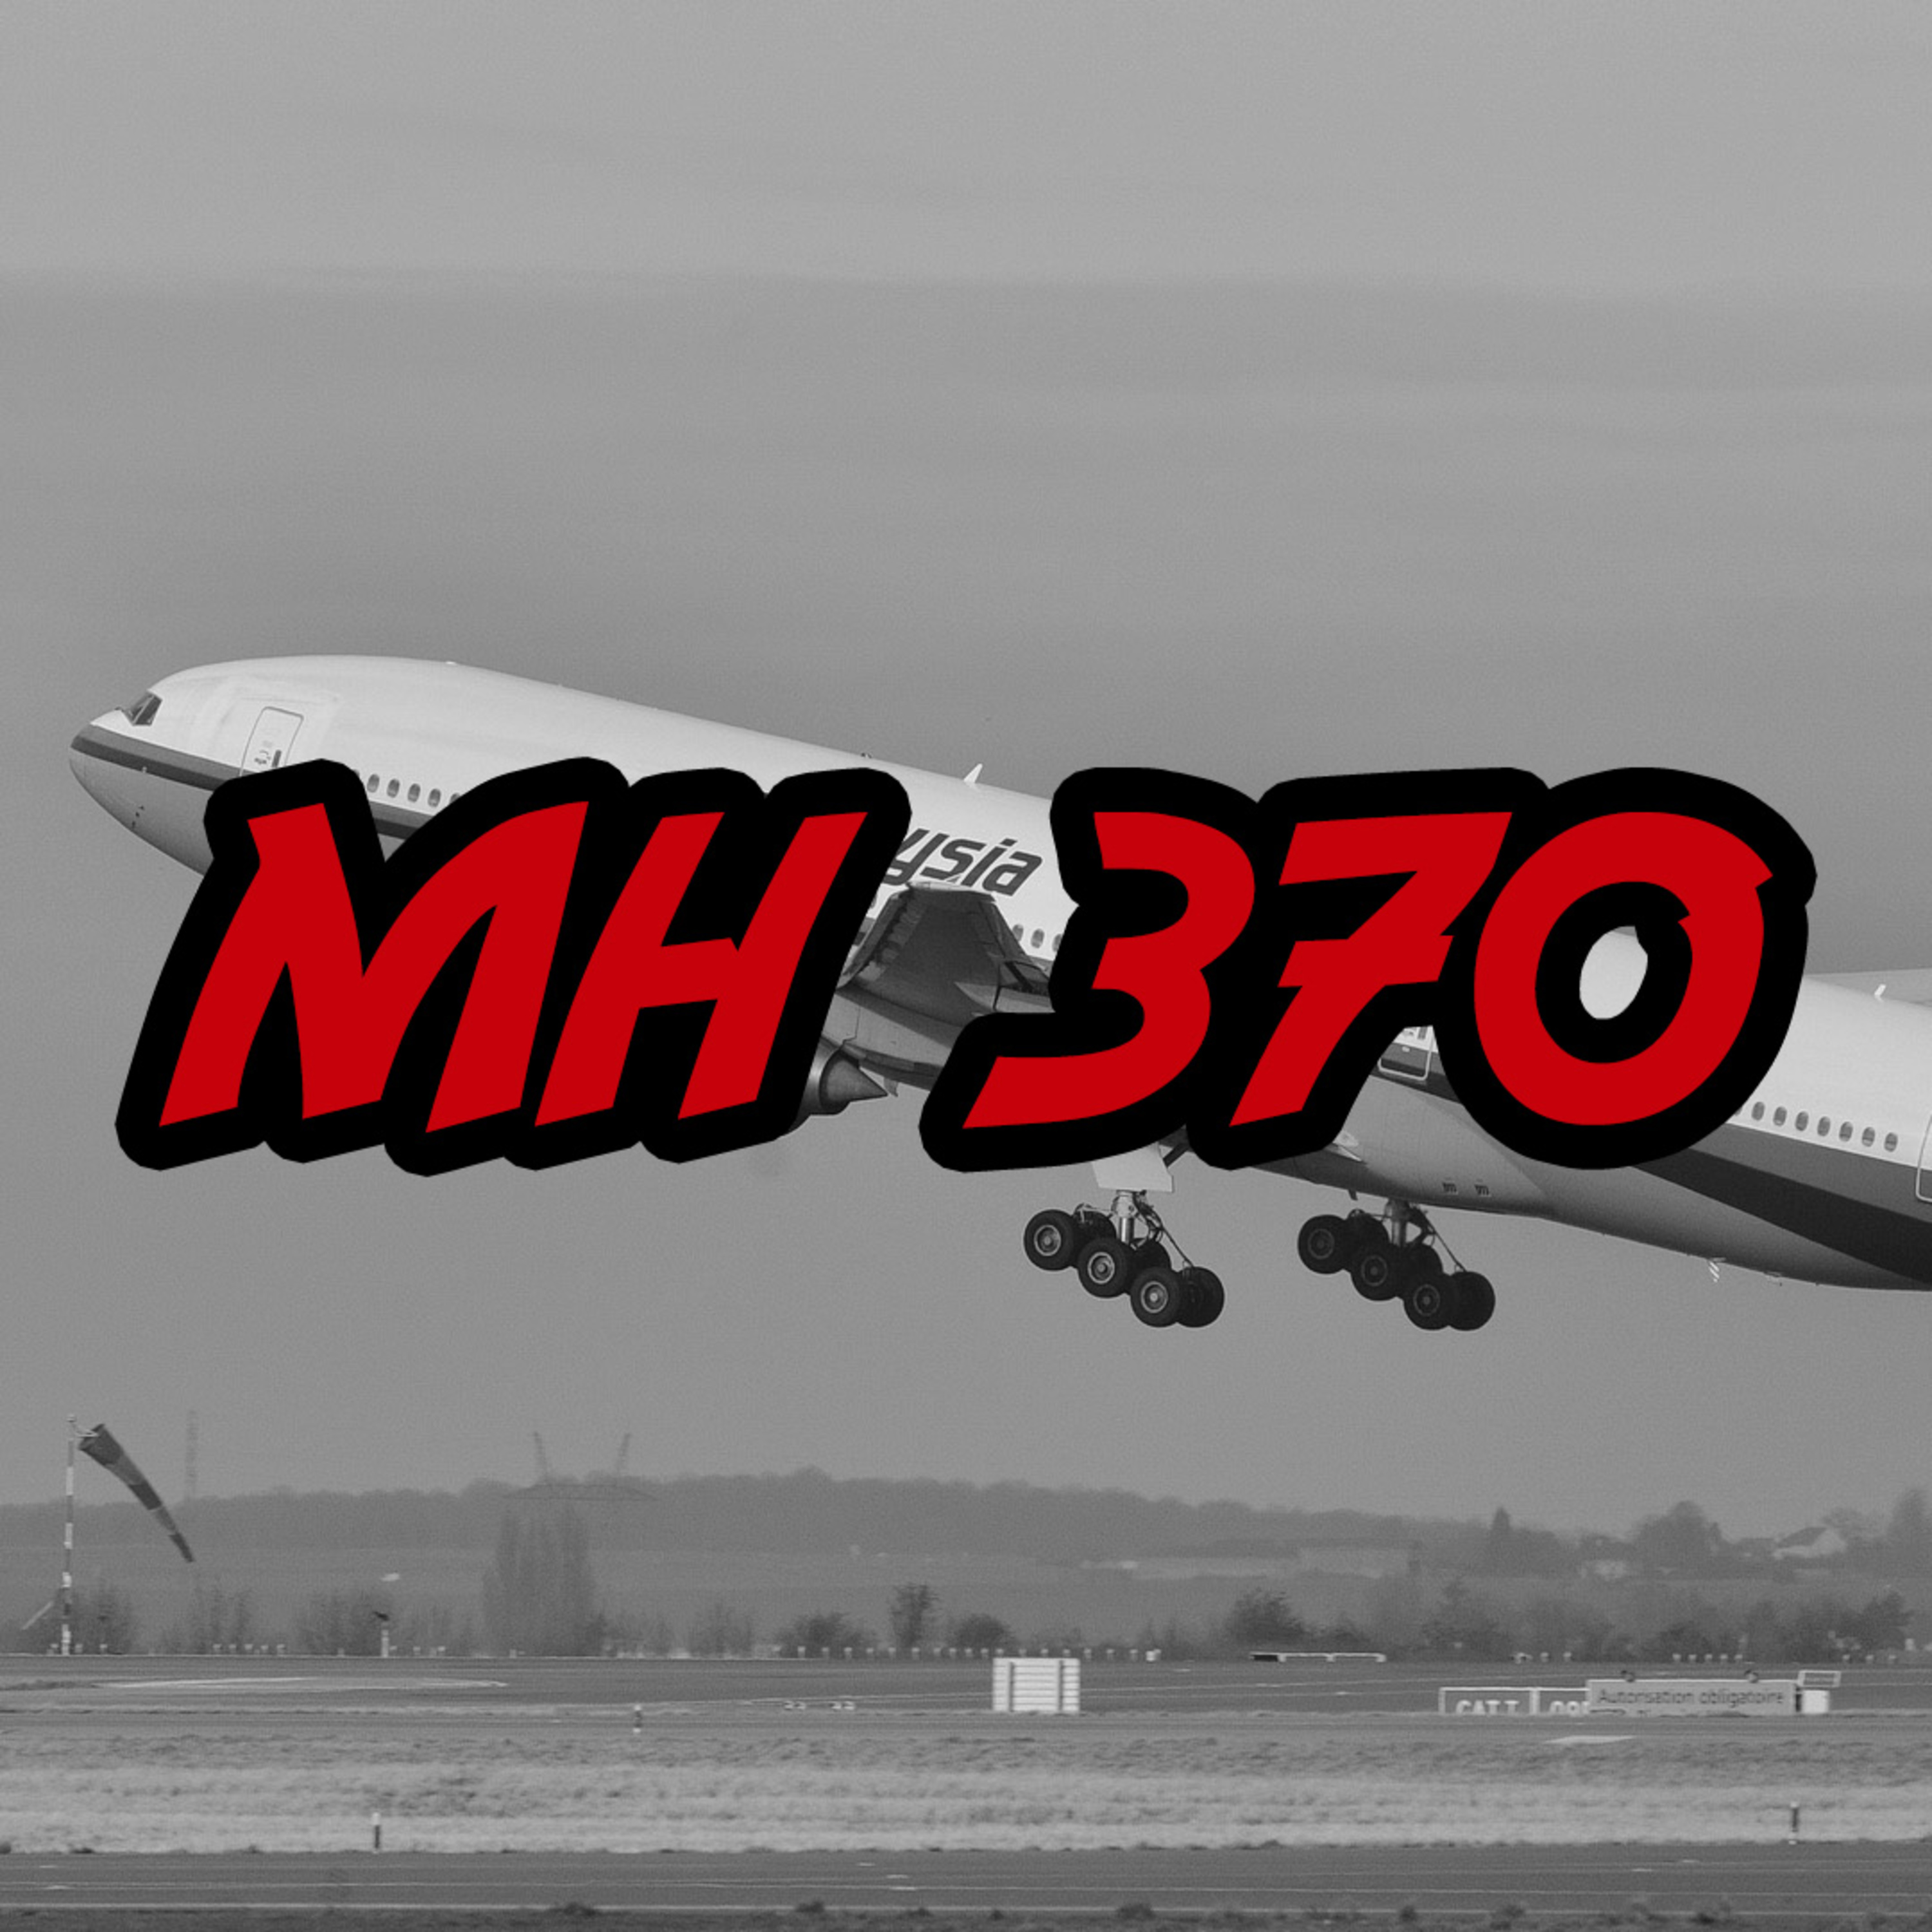 MH 370 - True Stories, Malaysia